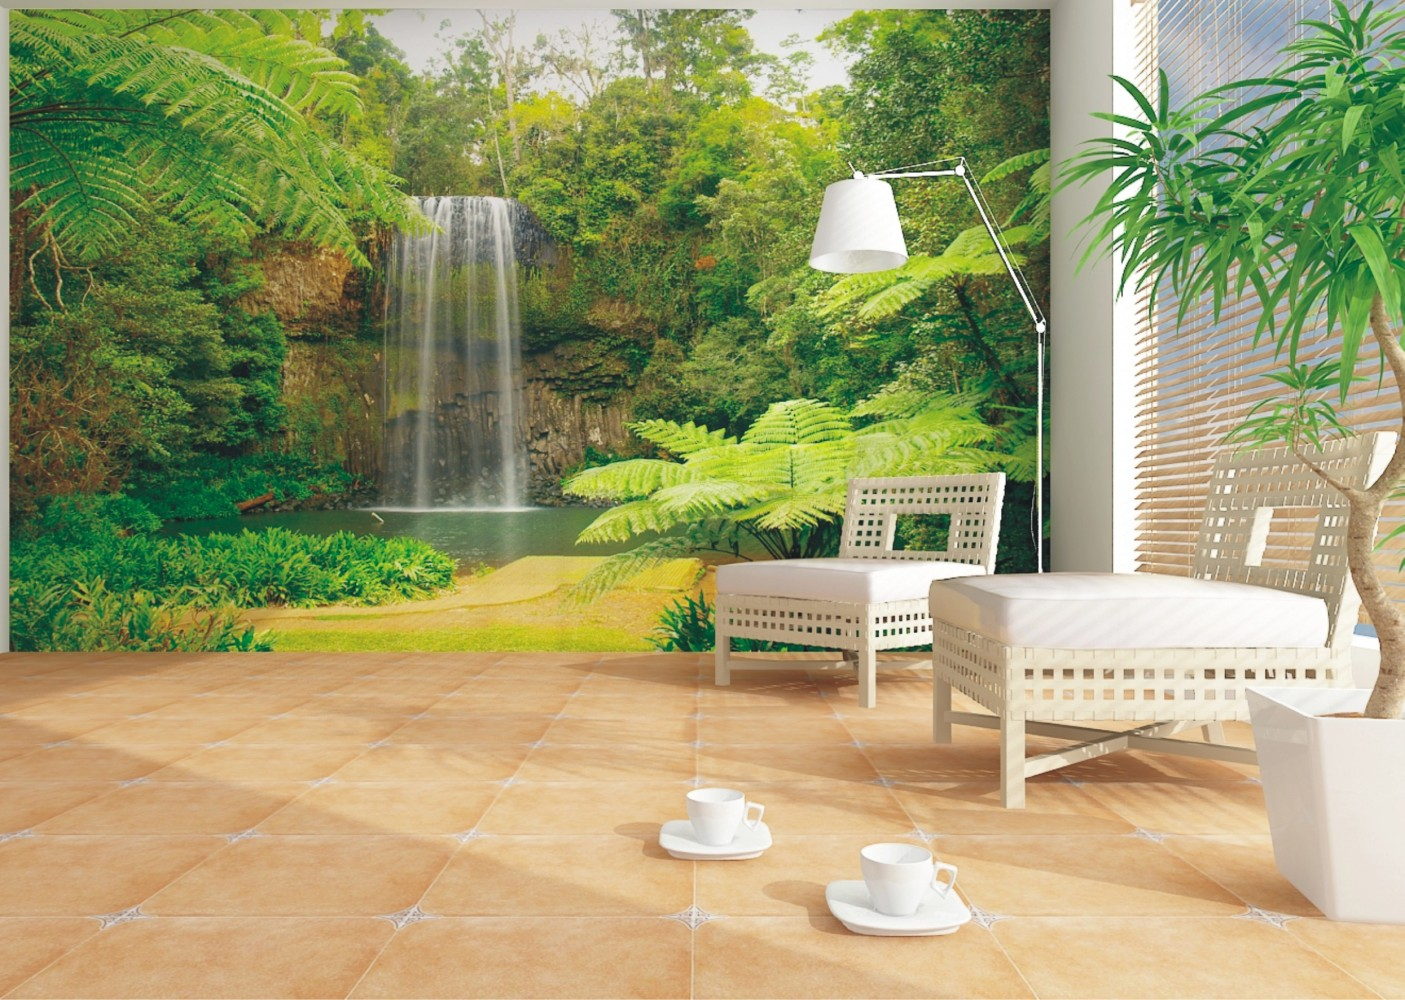 Wall mural wallpaper nature jungle downfall plant photo for Baby mural wallpaper